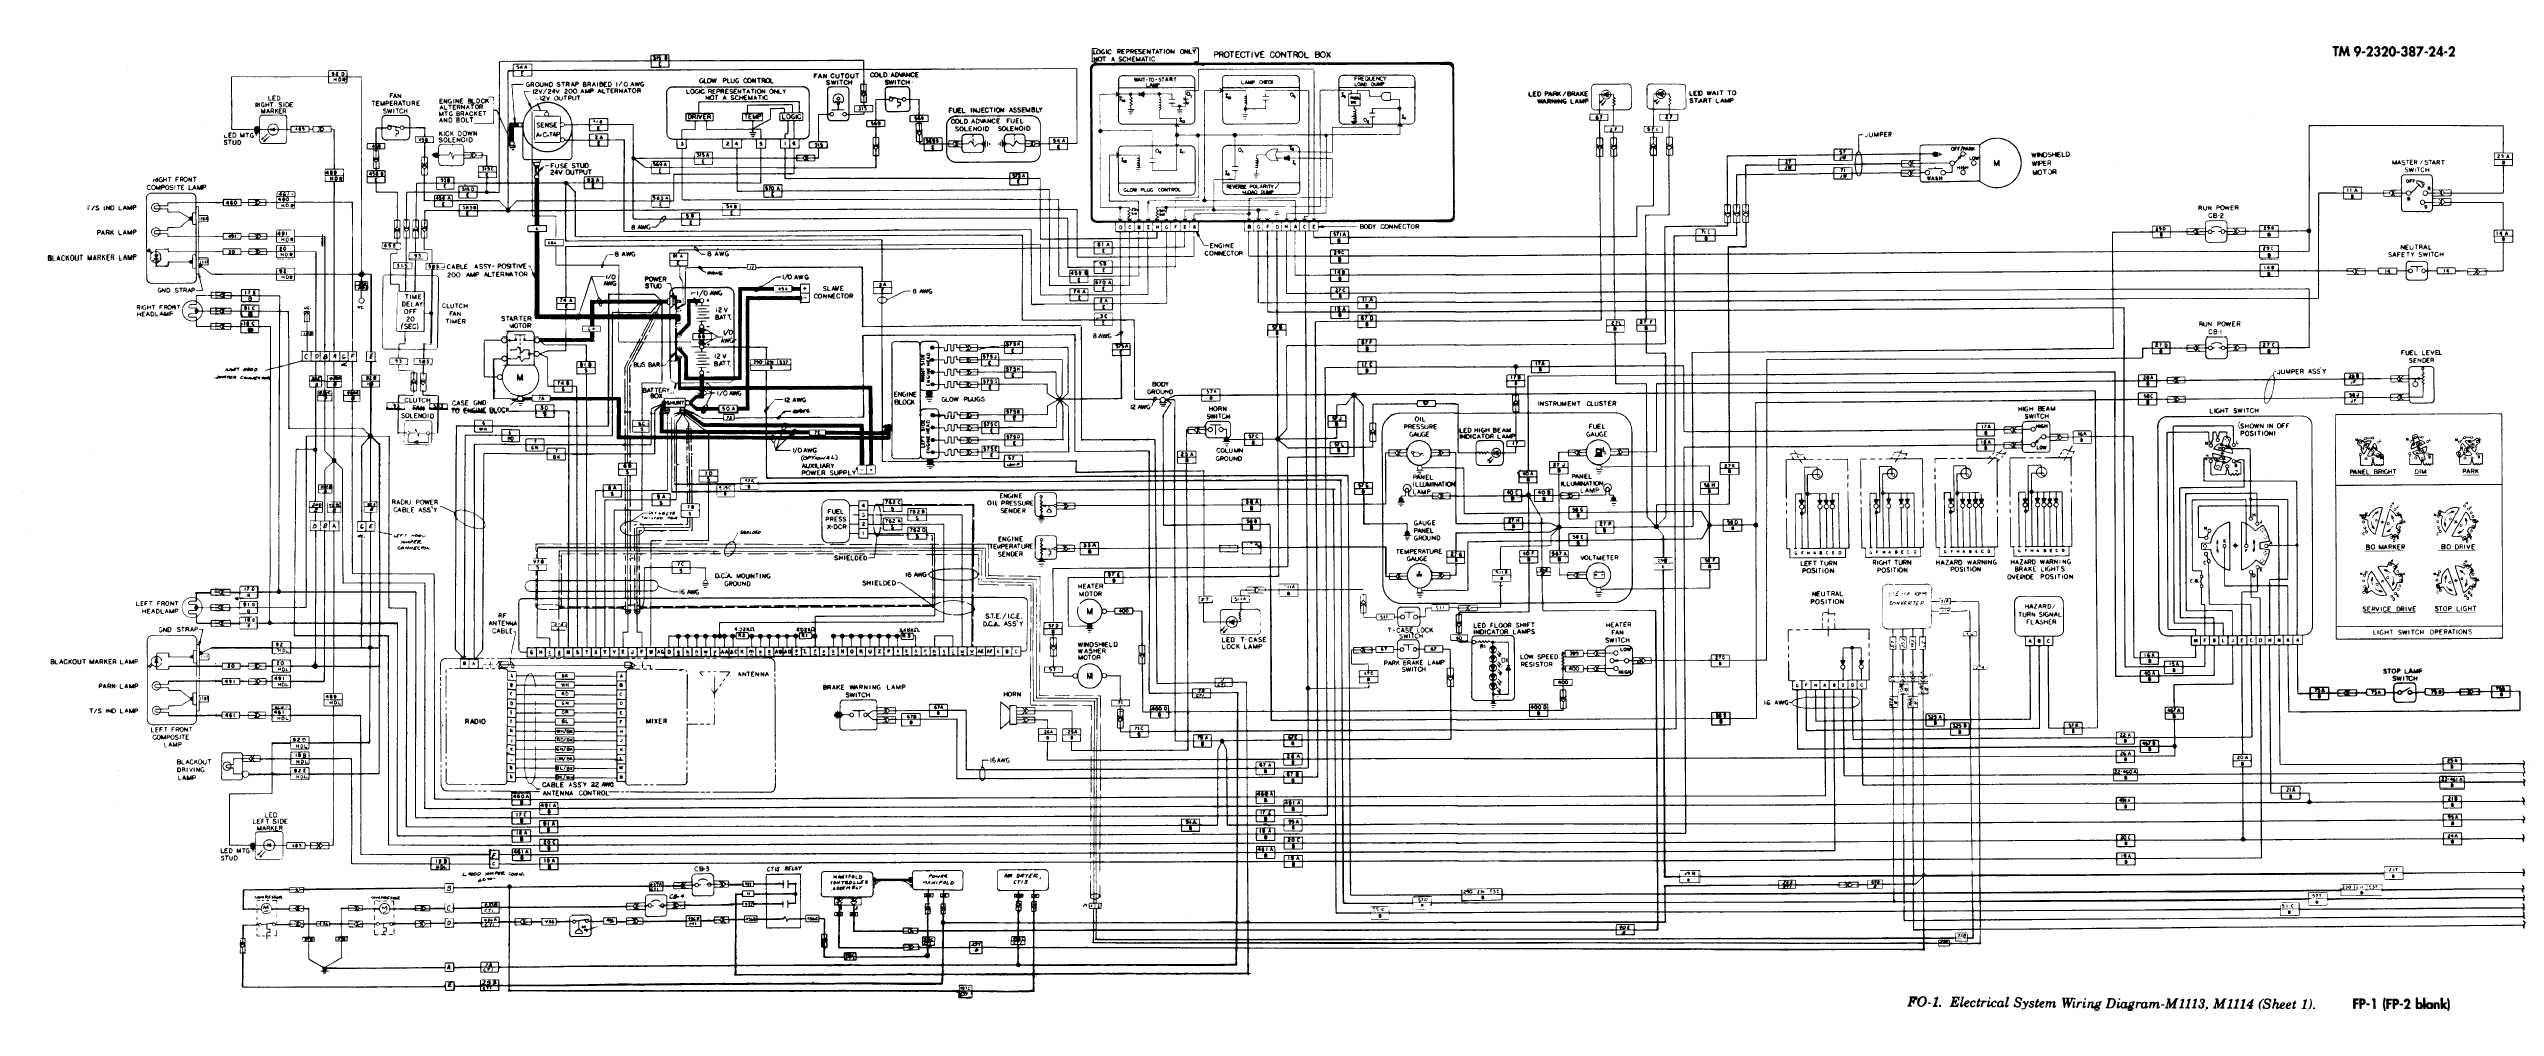 Electrical Systems Wiring Diagrams Starting Know About 79 Corvette Antenna Diagram Fo 1 System Rh Hummer Hmmwv Tpub Com Car